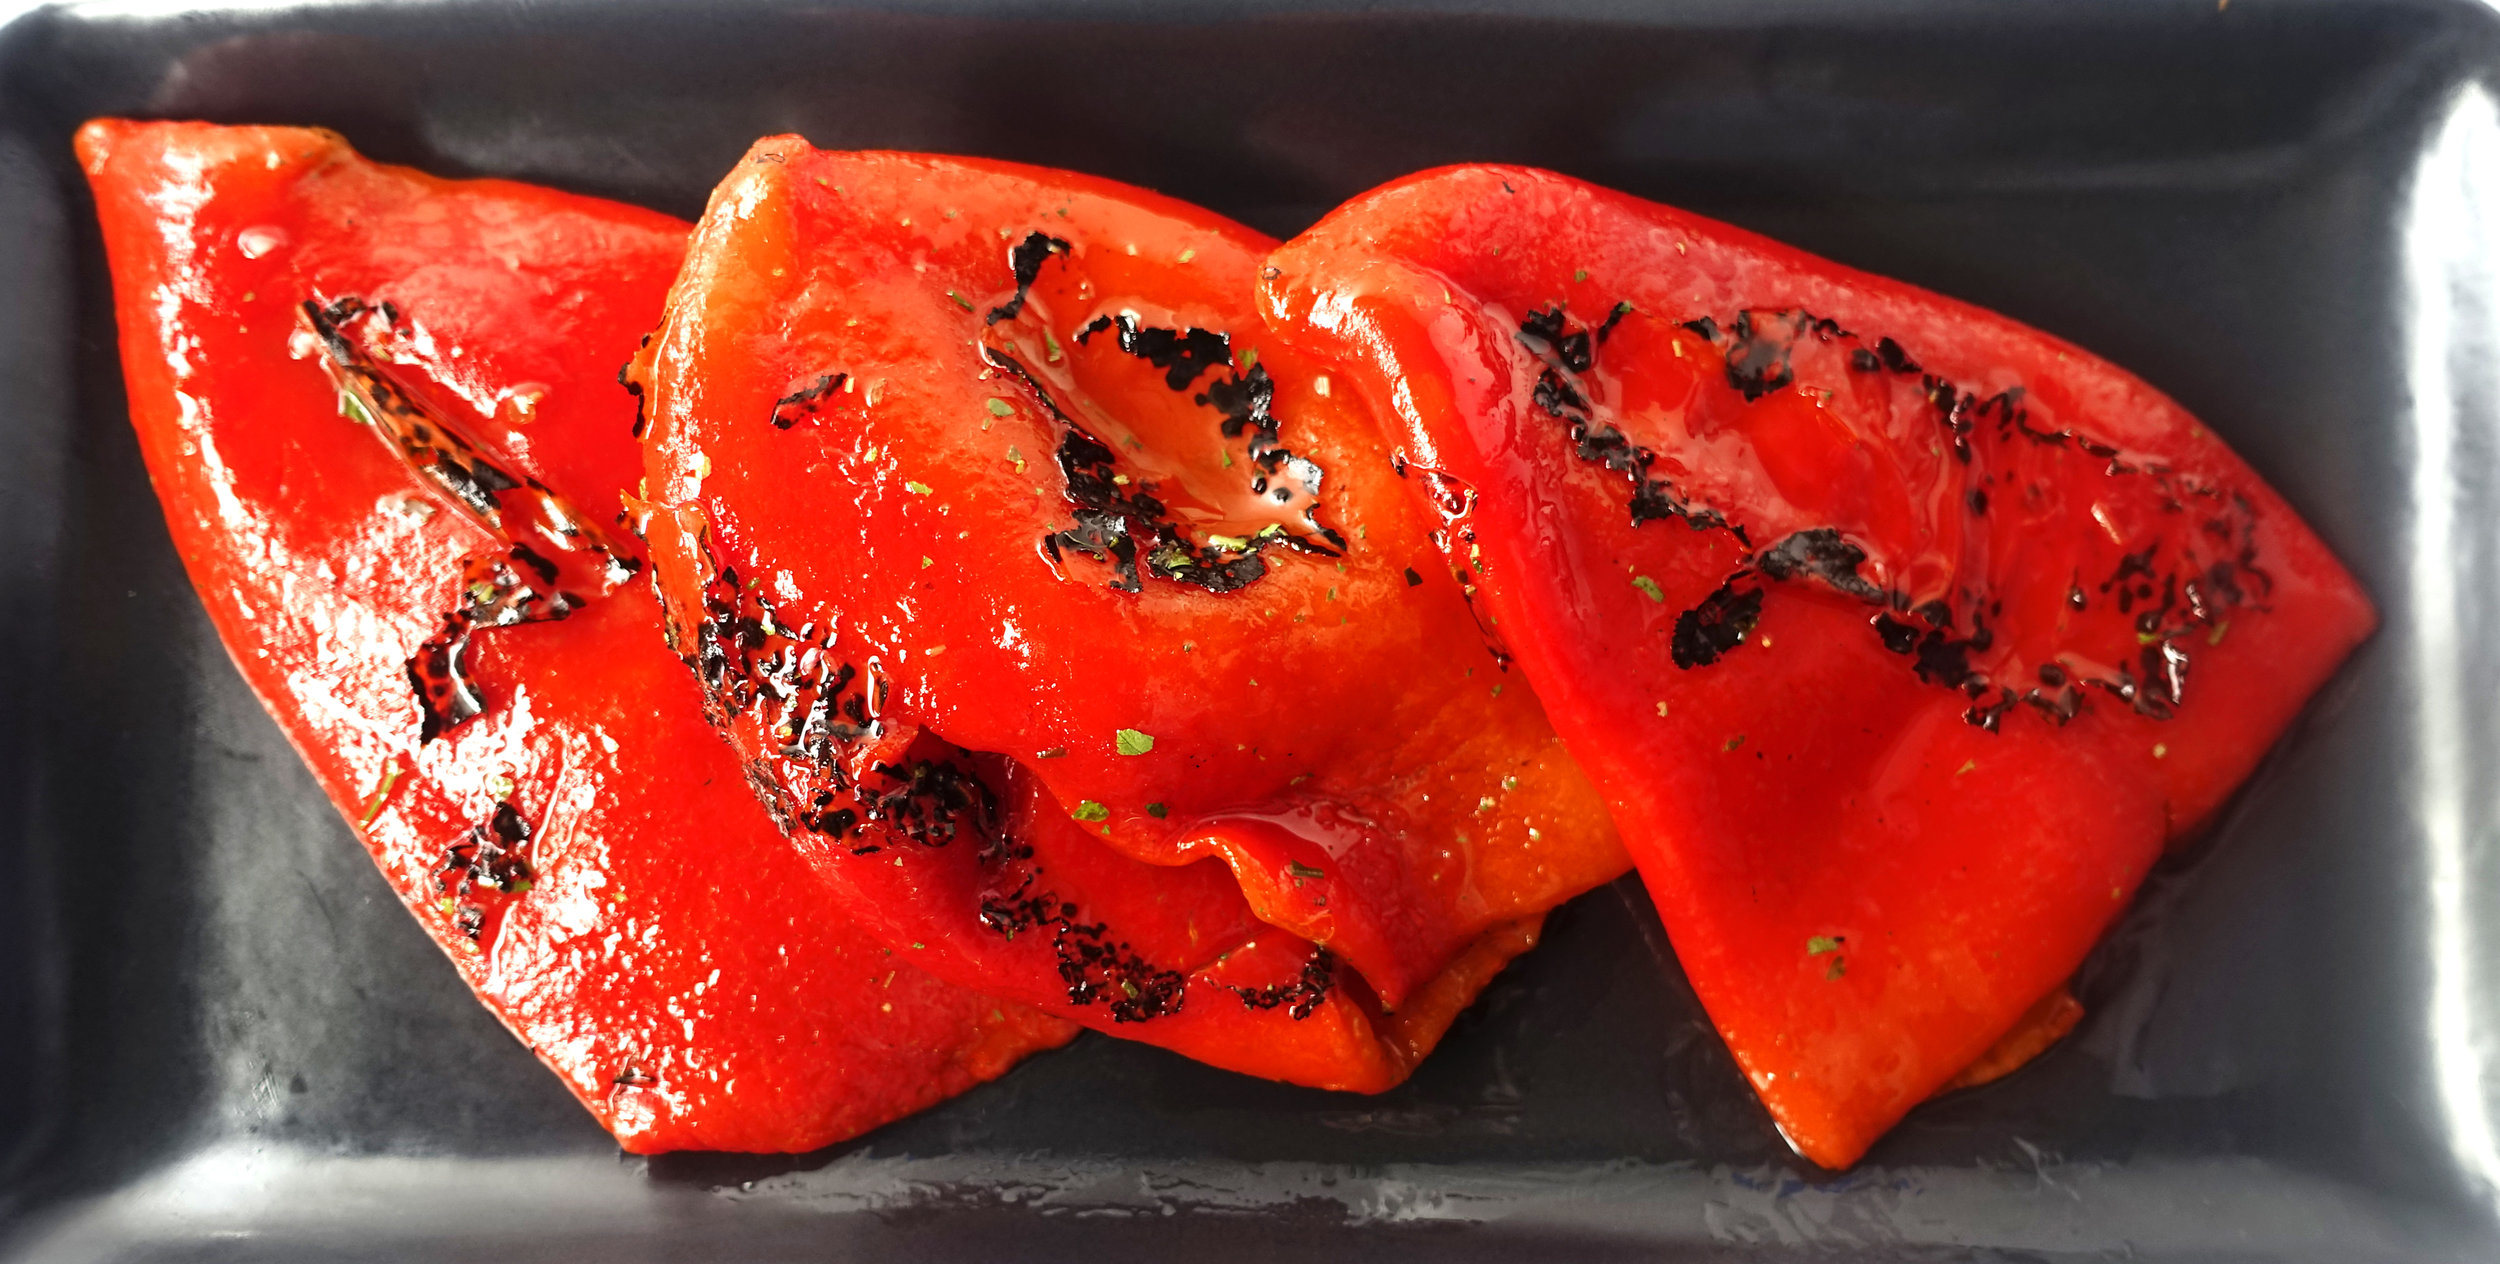 Grilled Red Peppers Whole